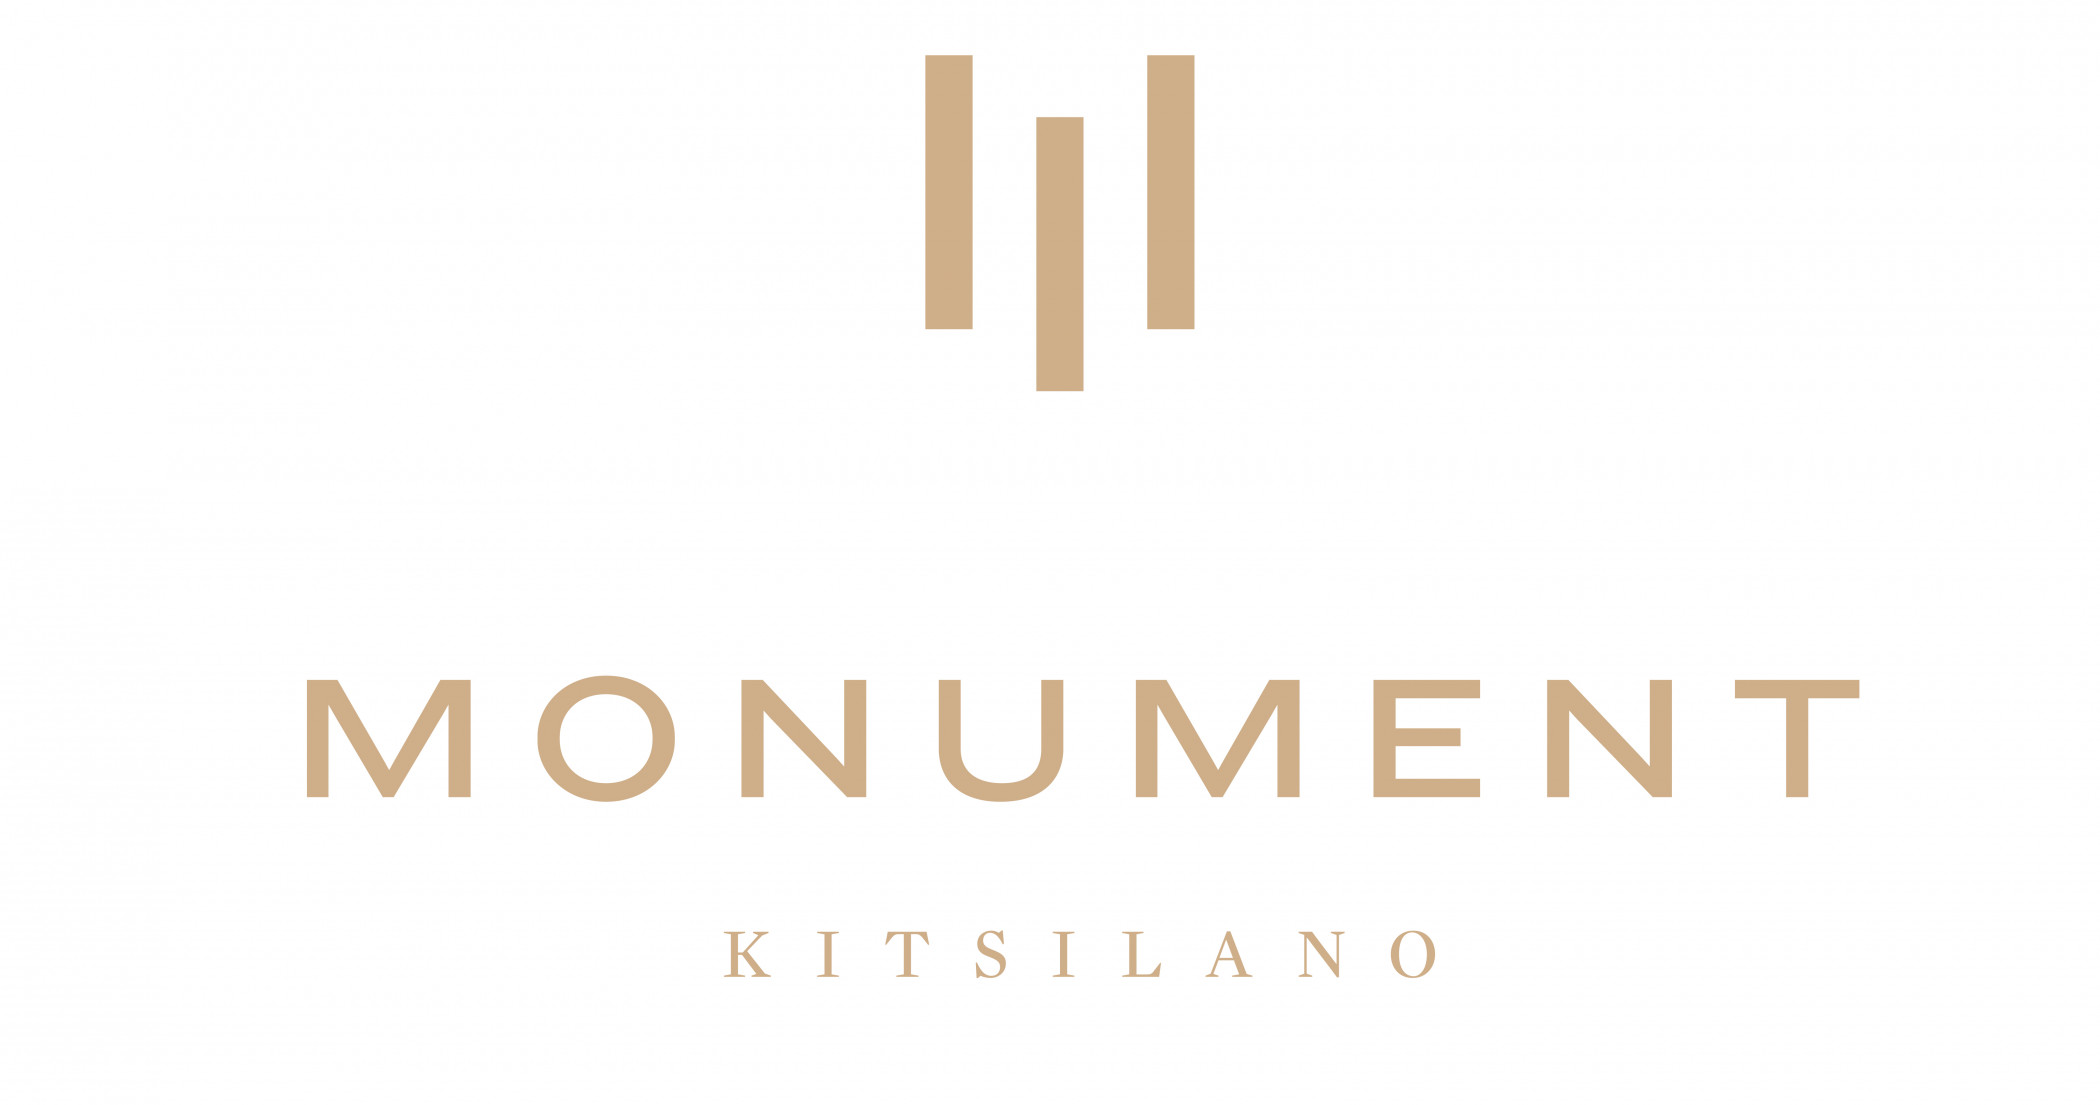 Monument Kitsilano logo, new condos and townhomes for sale soon in Kitsilano